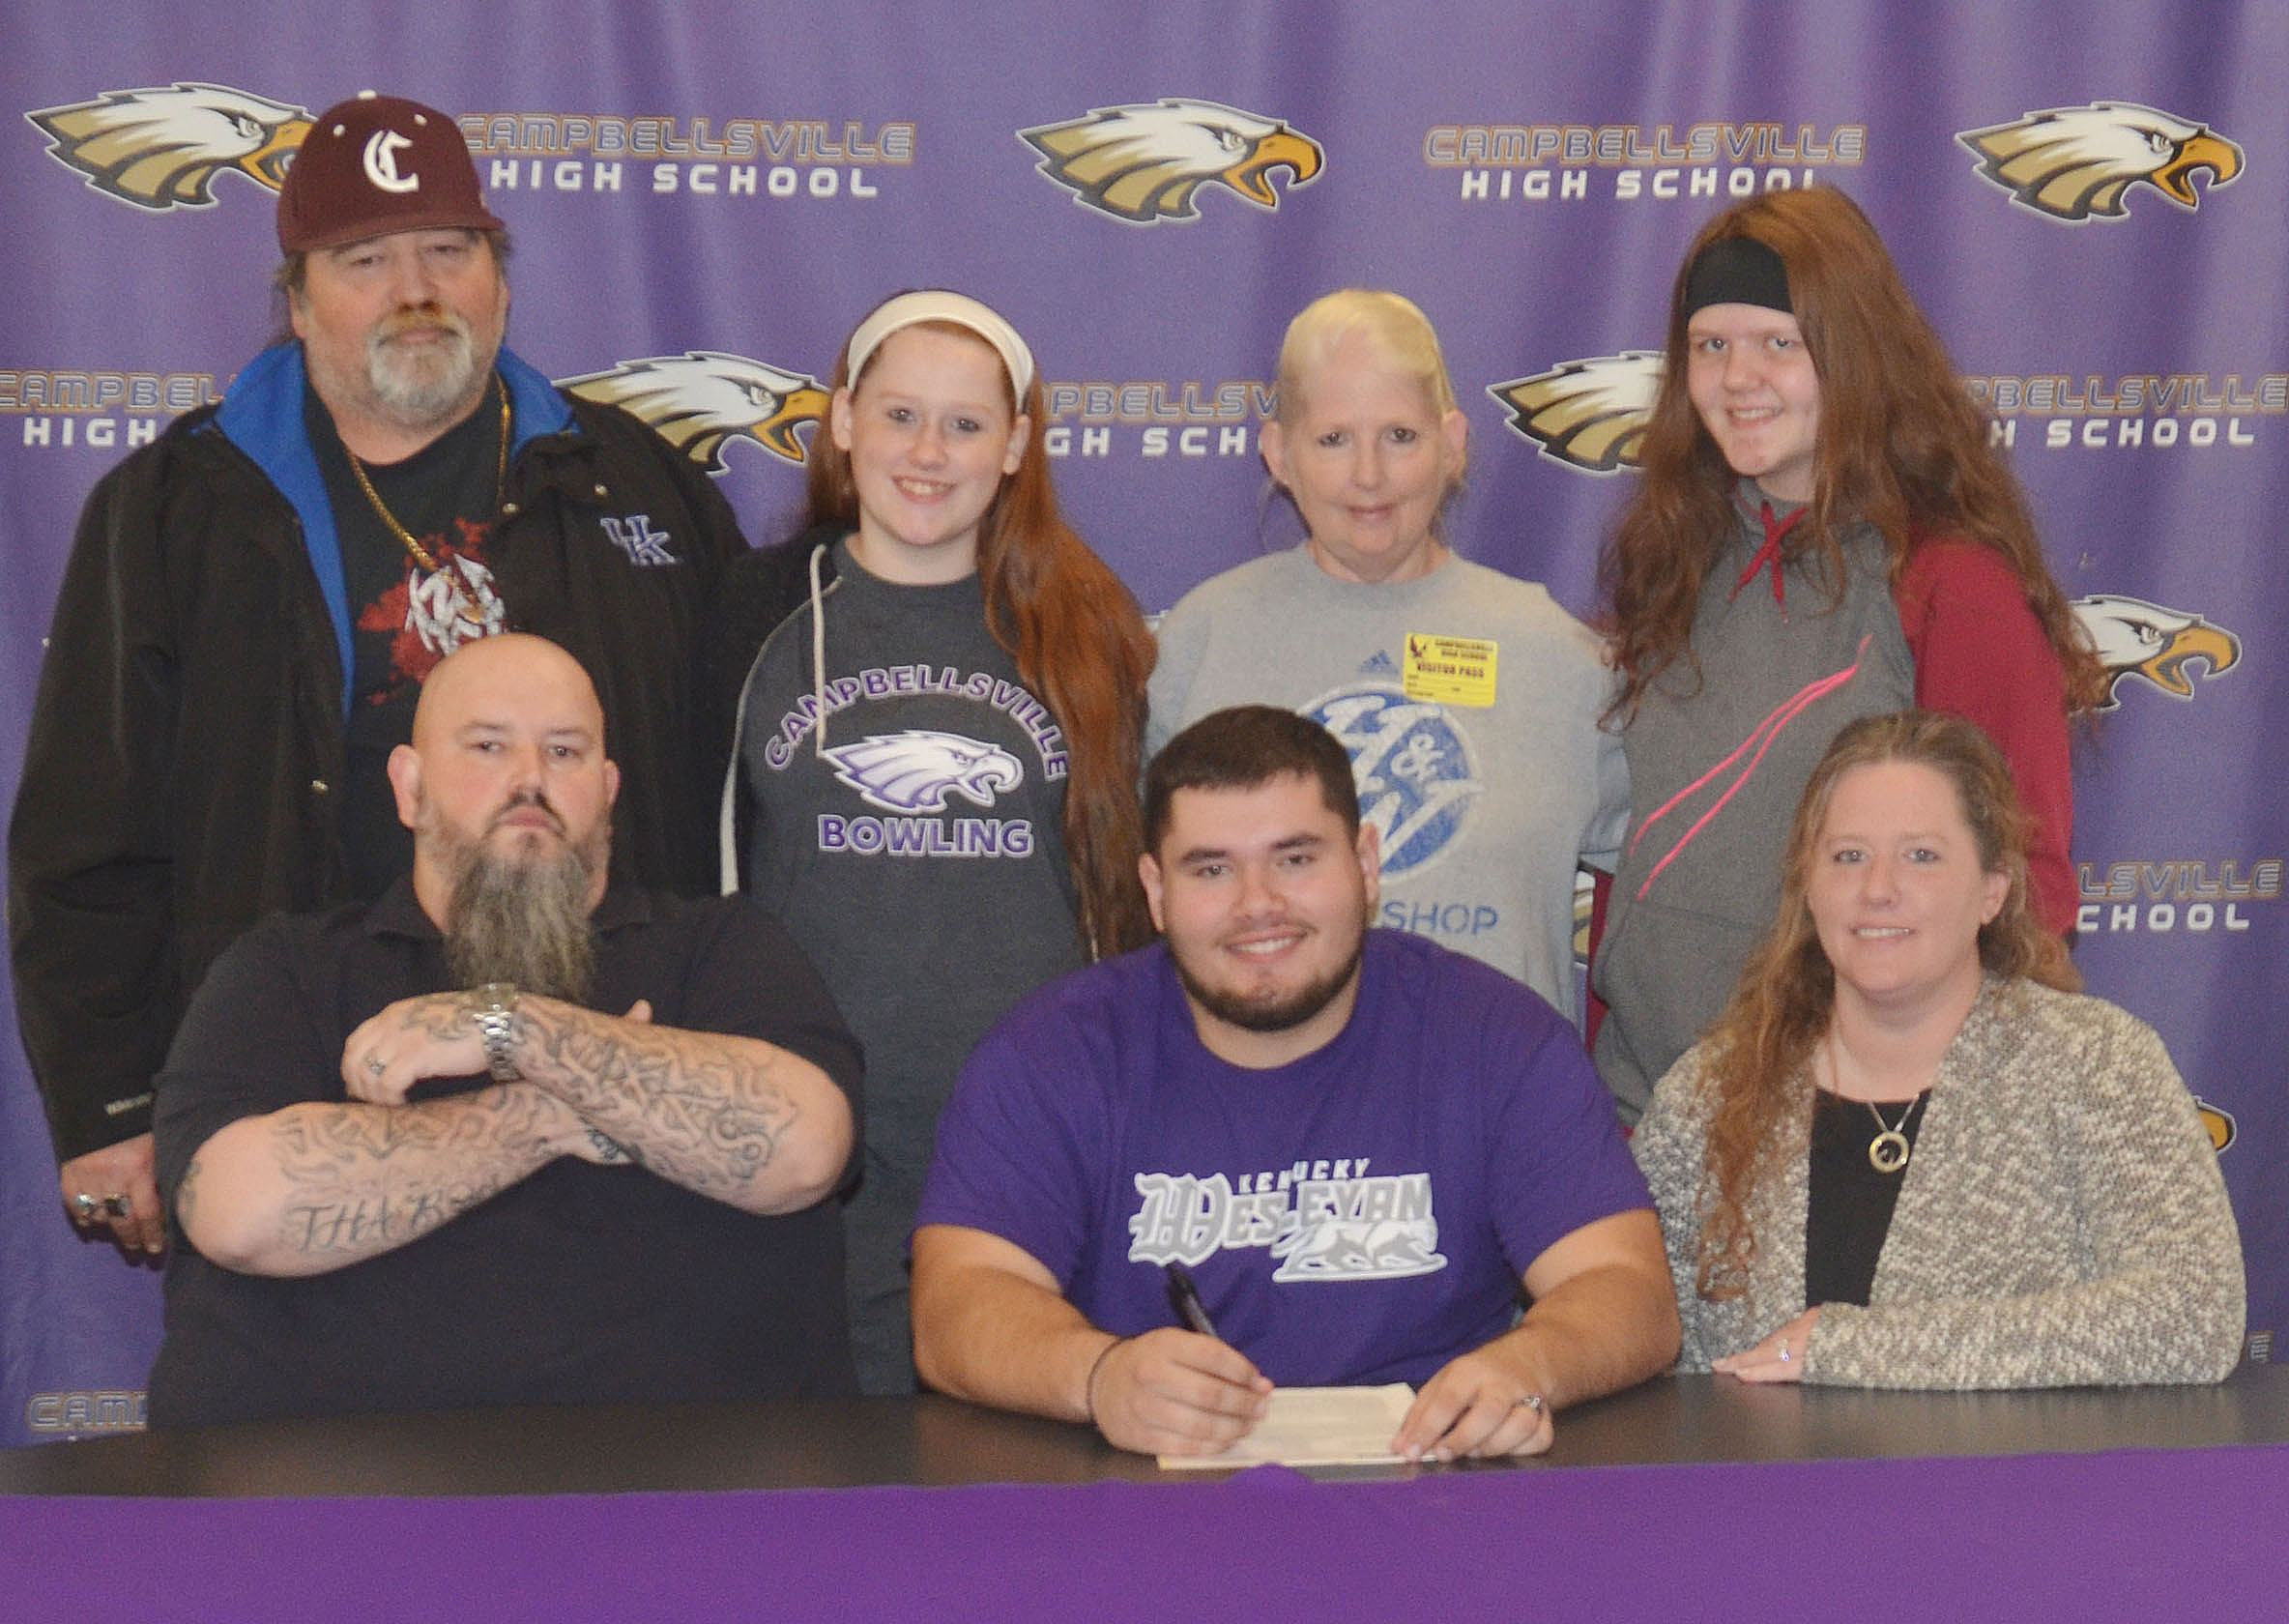 Campbellsville High School football player Logan Brown will continue his academic and football career at Kentucky Wesleyan College this fall. He officially signed his letter of intent on Wednesday, Feb. 1, which was National Signing Day. From left, front, are stepfather Johnny Welch, Logan, and his mother, Krissy Welch. Back, grandfather Joe Pendleton, sister and CHS sophomore Gracie Miller, grandmother Kim Pendleton, and sister and Campbellsville Middle School seventh-grader Autumn Brown.